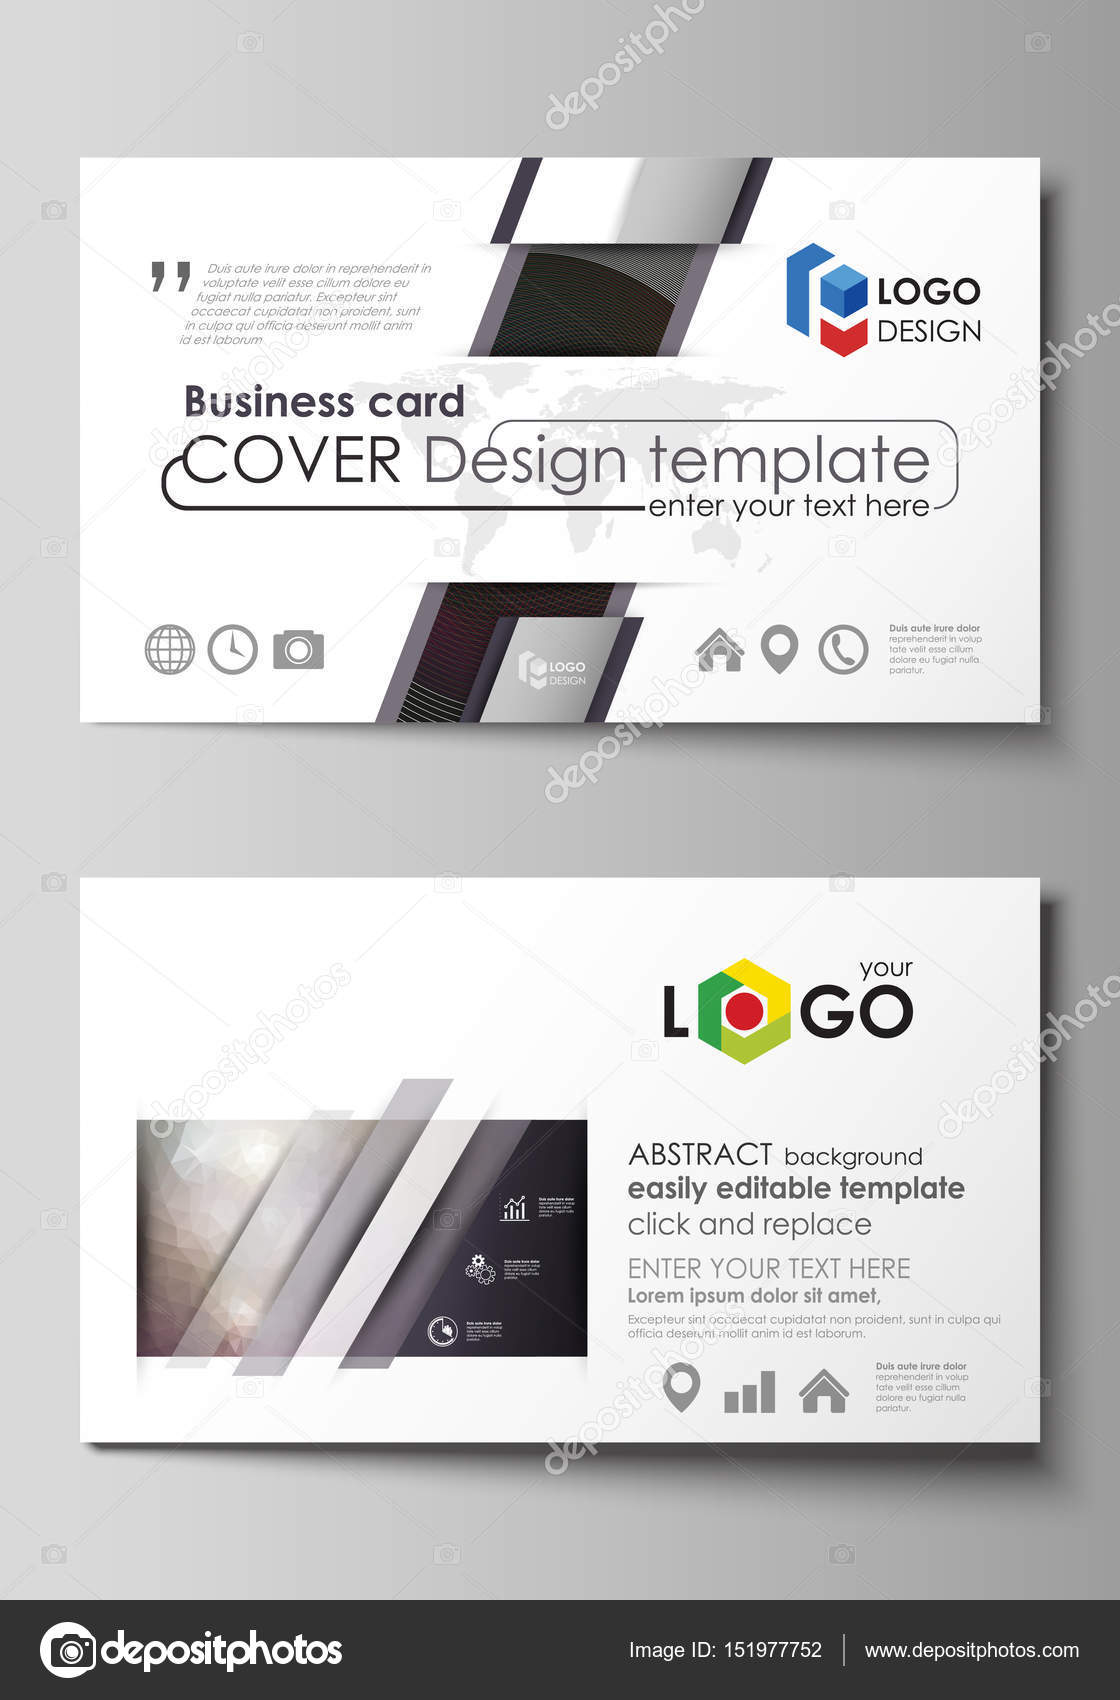 Business card templates easy editable layout vector design business card templates easy editable layout abstract vector design template dark color triangles and colorful circles abstract polygonal style modern fbccfo Gallery